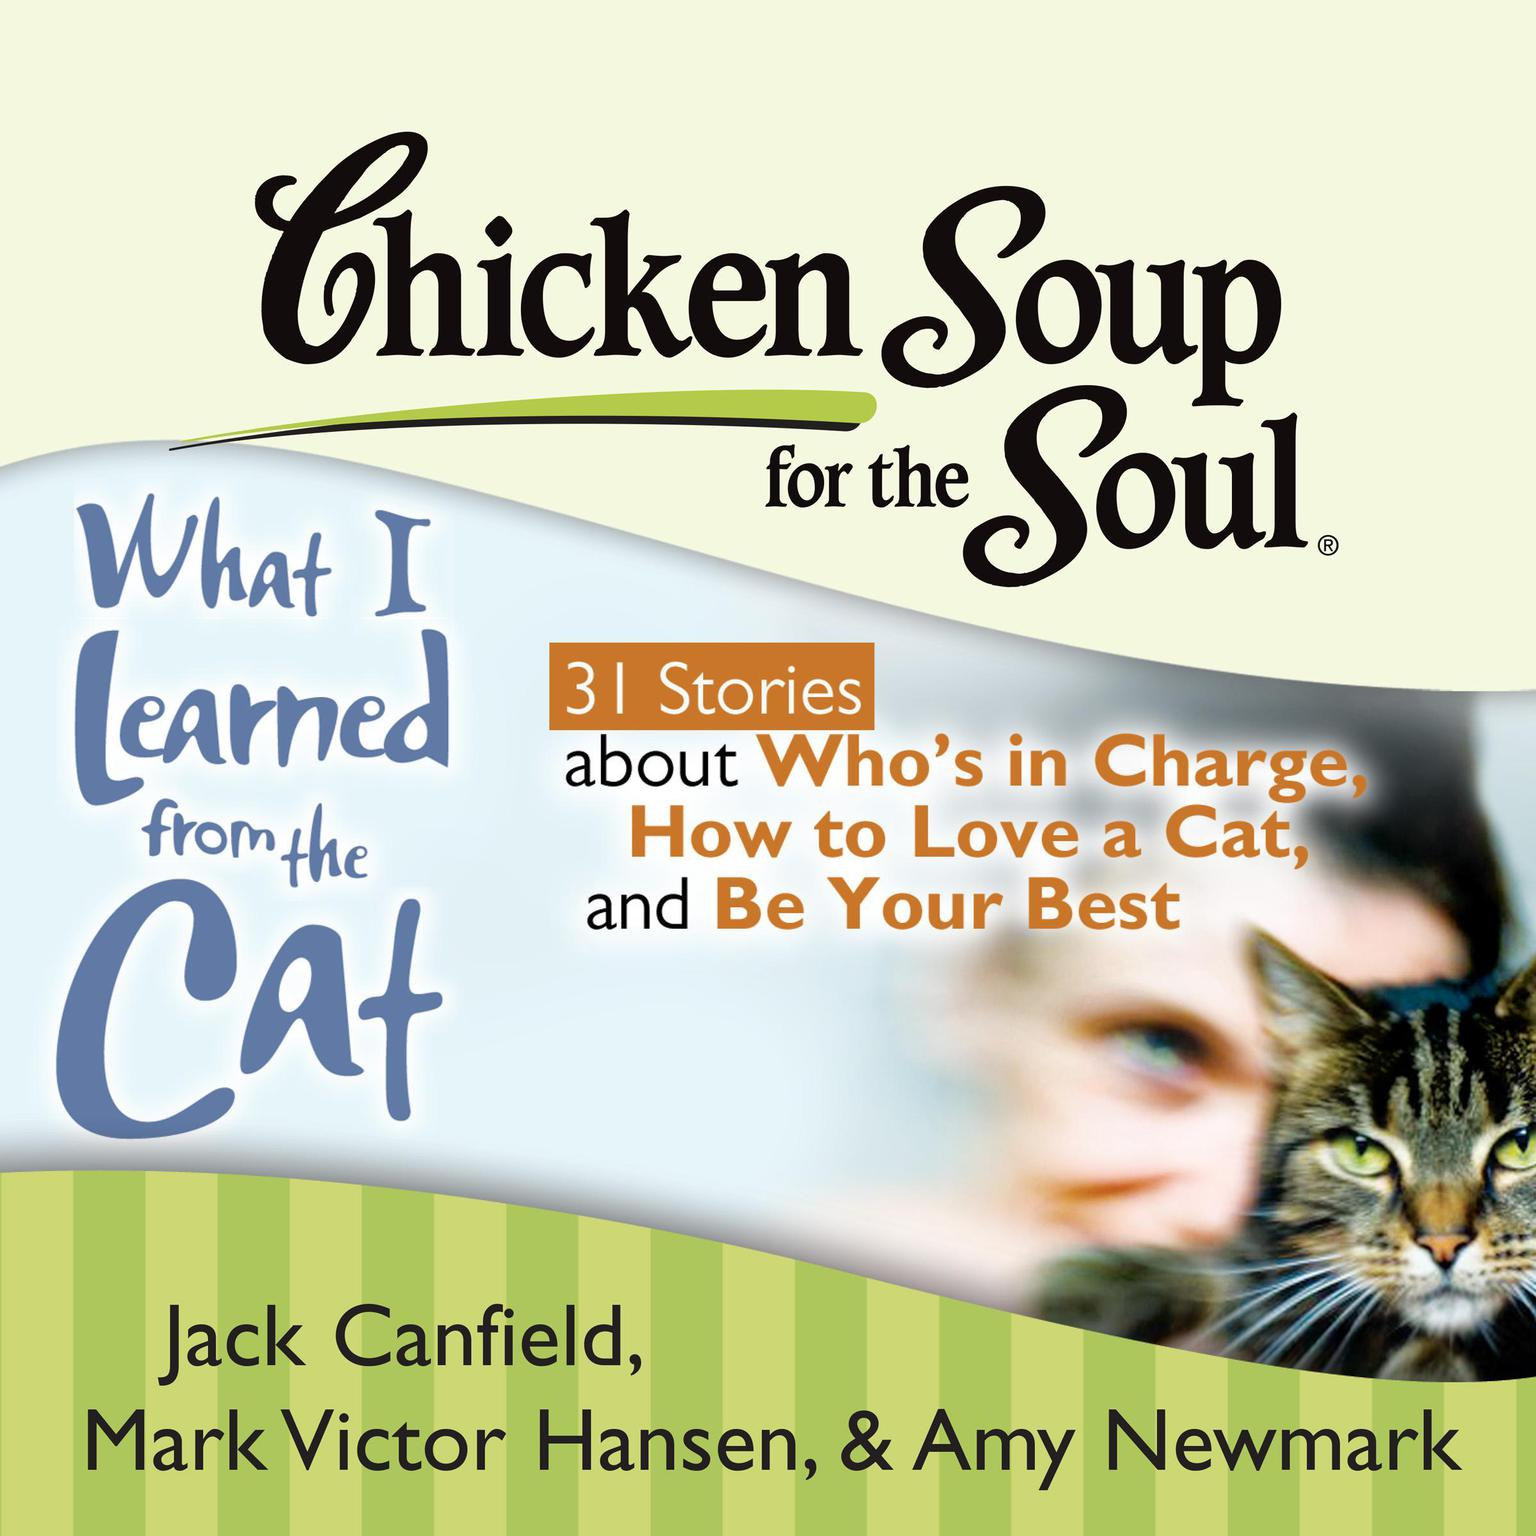 Printable Chicken Soup for the Soul: What I Learned from the Cat - 31 Stories about Who's in Charge, How to Love a Cat, and Be Your Best Audiobook Cover Art